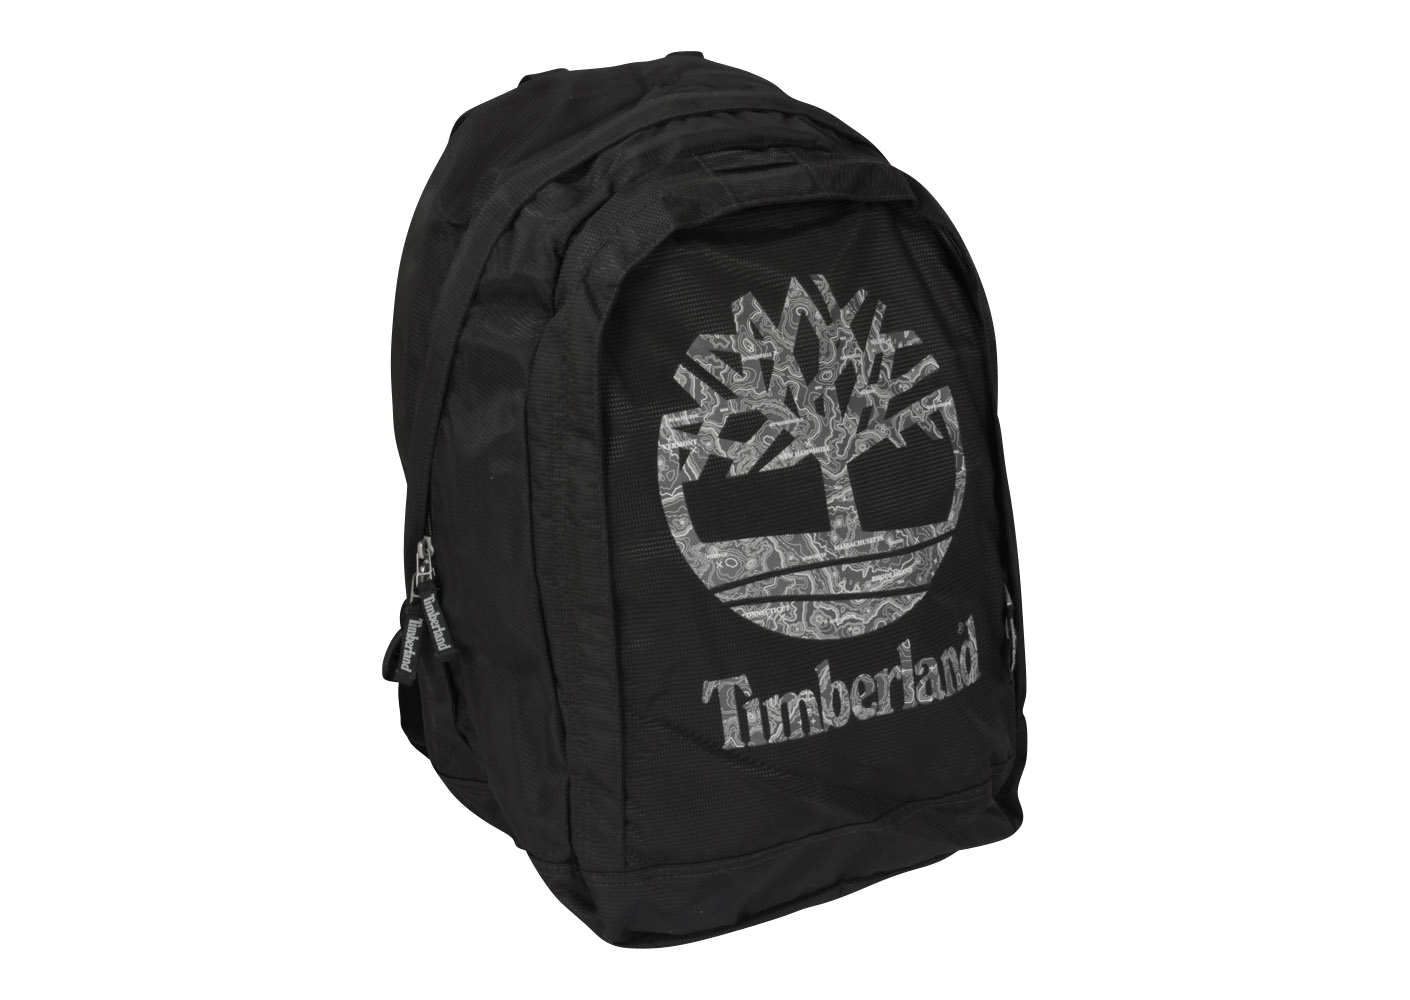 timberland sac a dos sunapee large noir sacs sacoches chausport. Black Bedroom Furniture Sets. Home Design Ideas